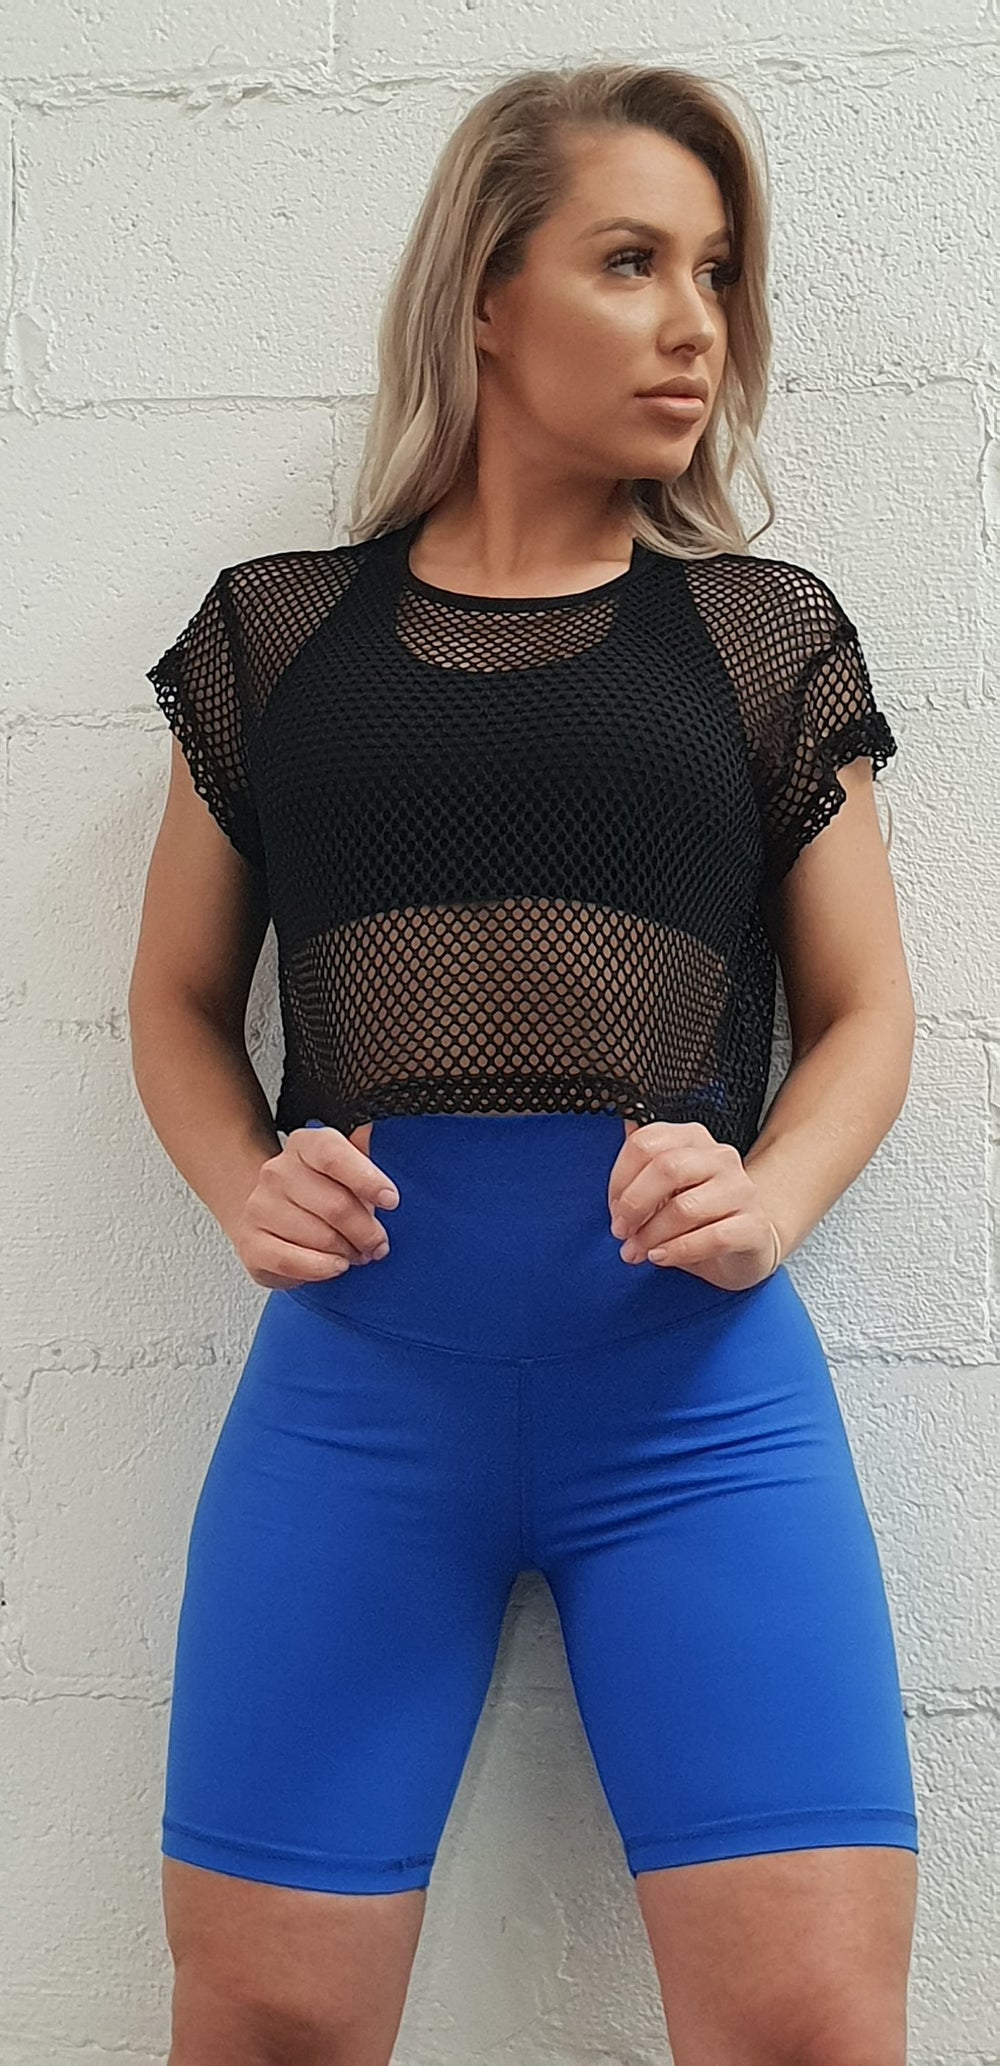 MESH TOPS - SUPER STEAL%